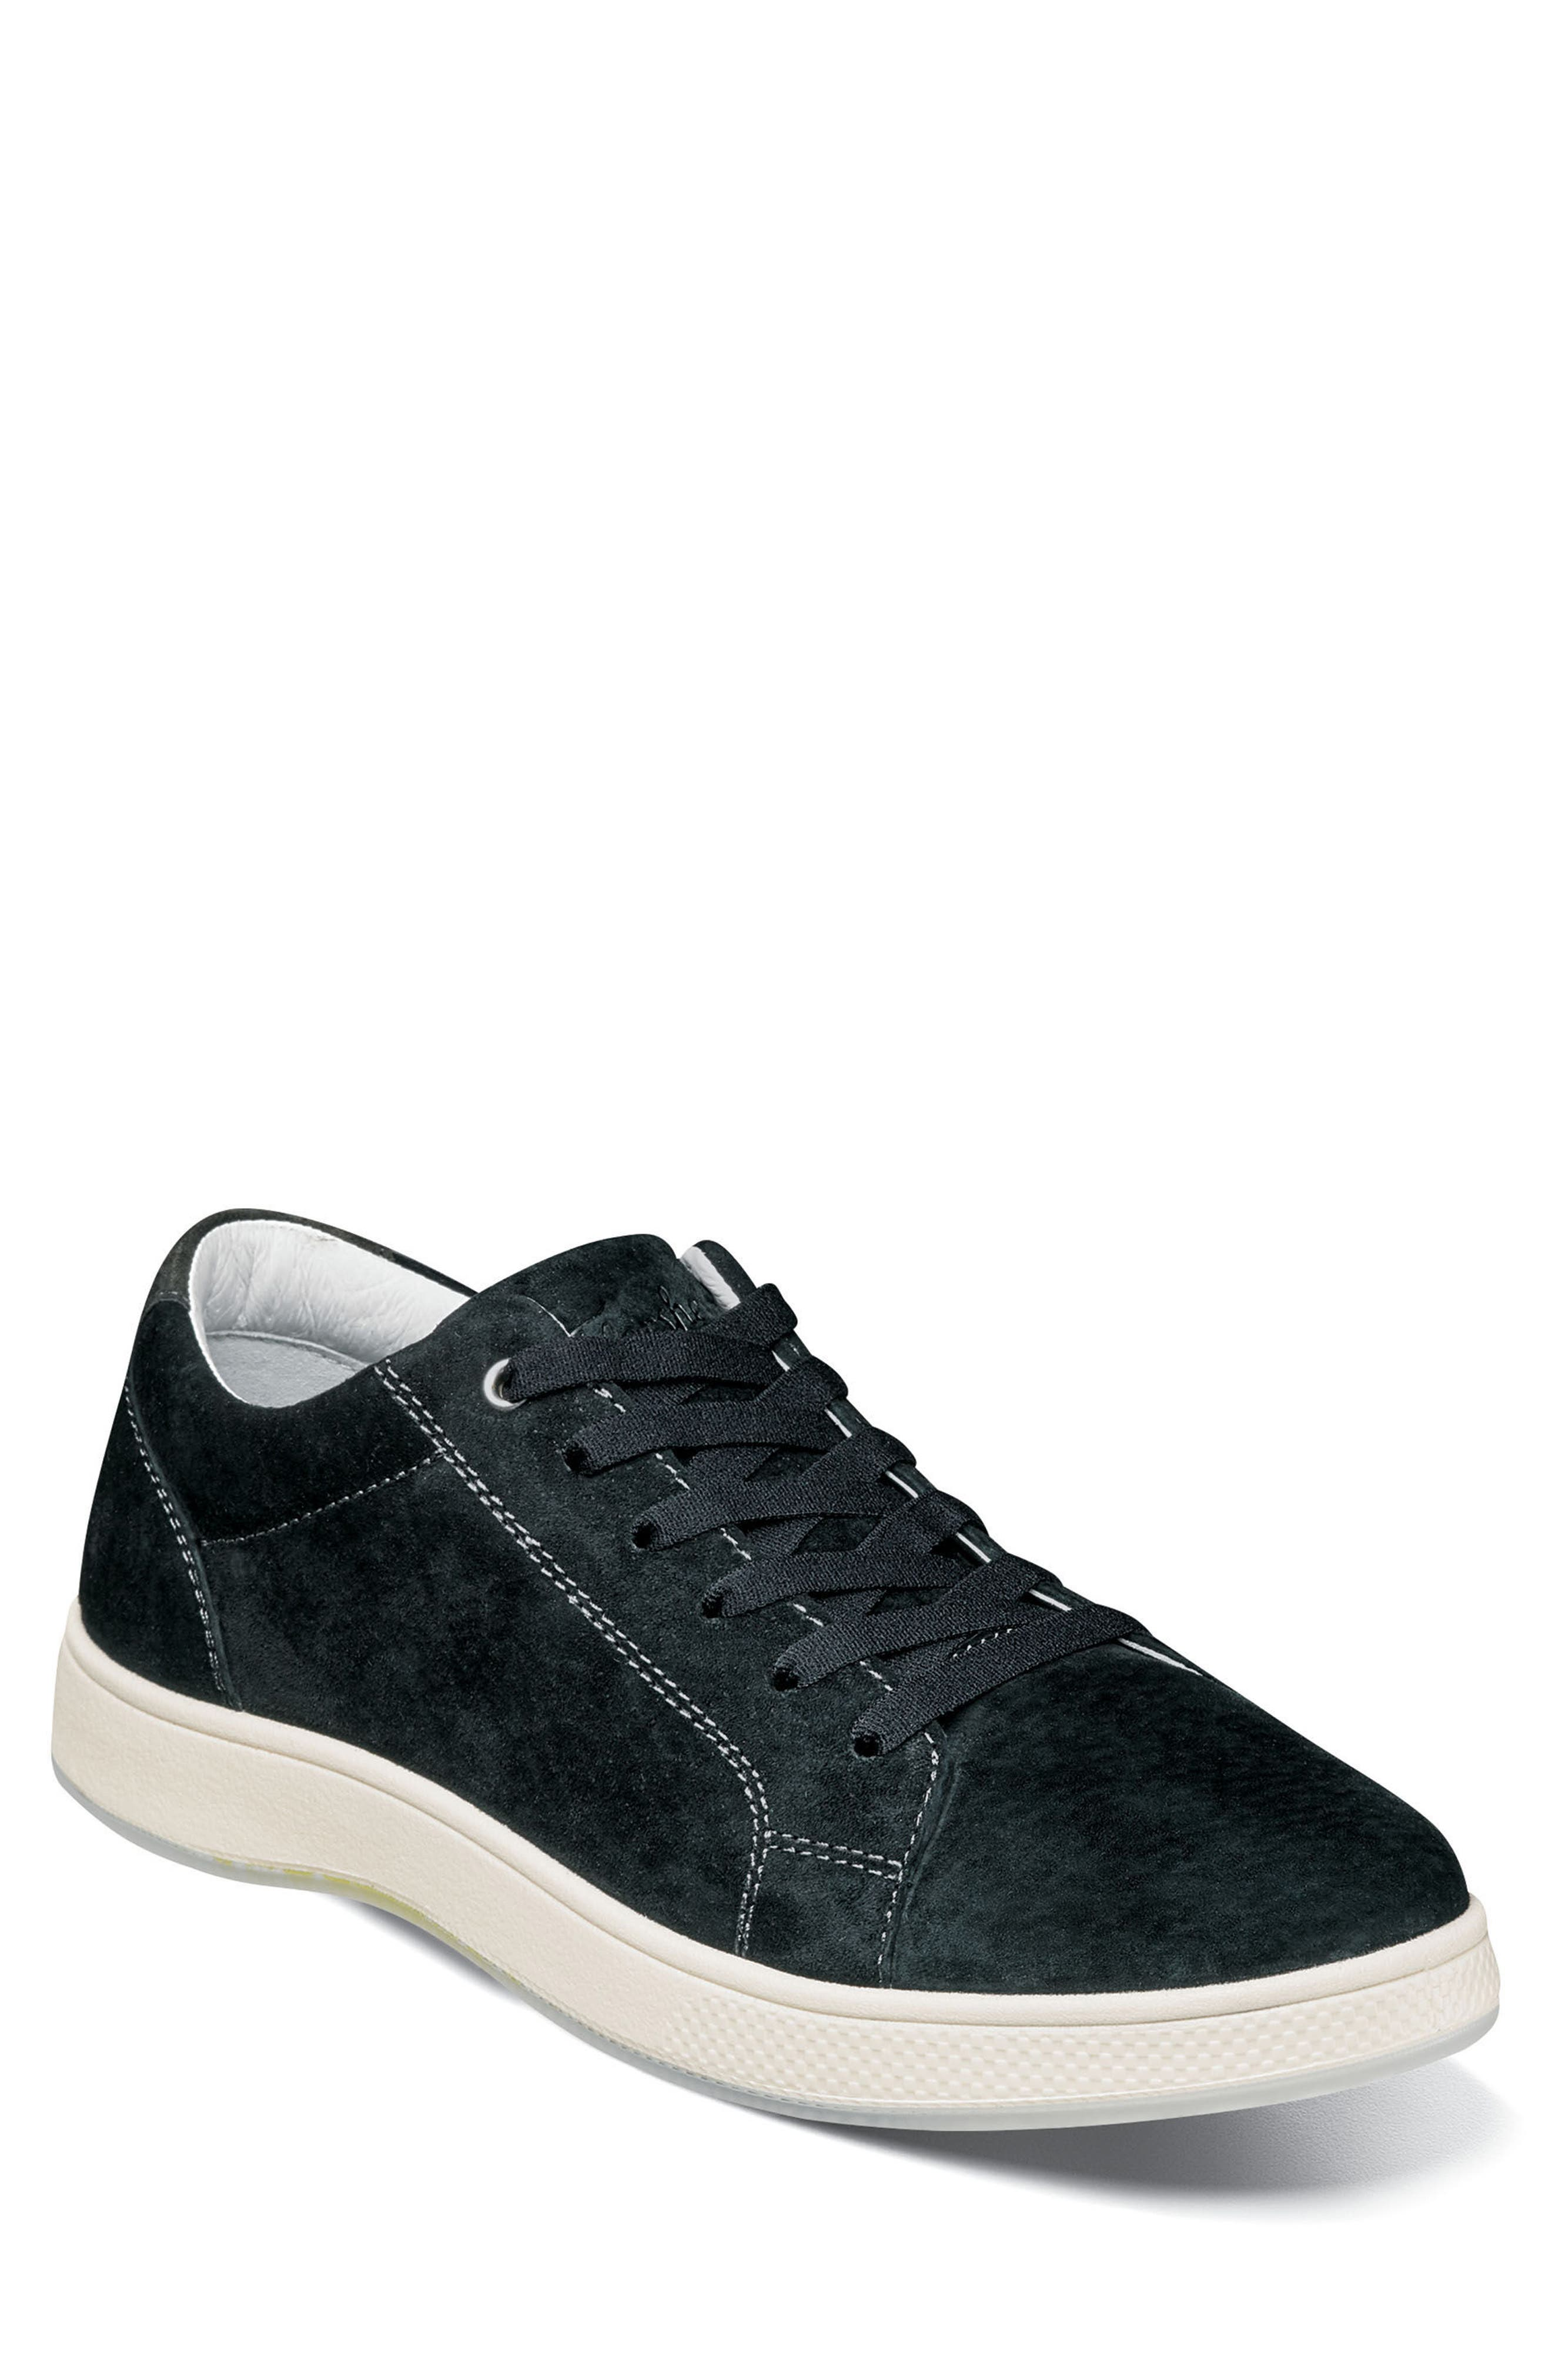 Edge Low Top Sneaker,                             Main thumbnail 1, color,                             BLACK NUBUCK